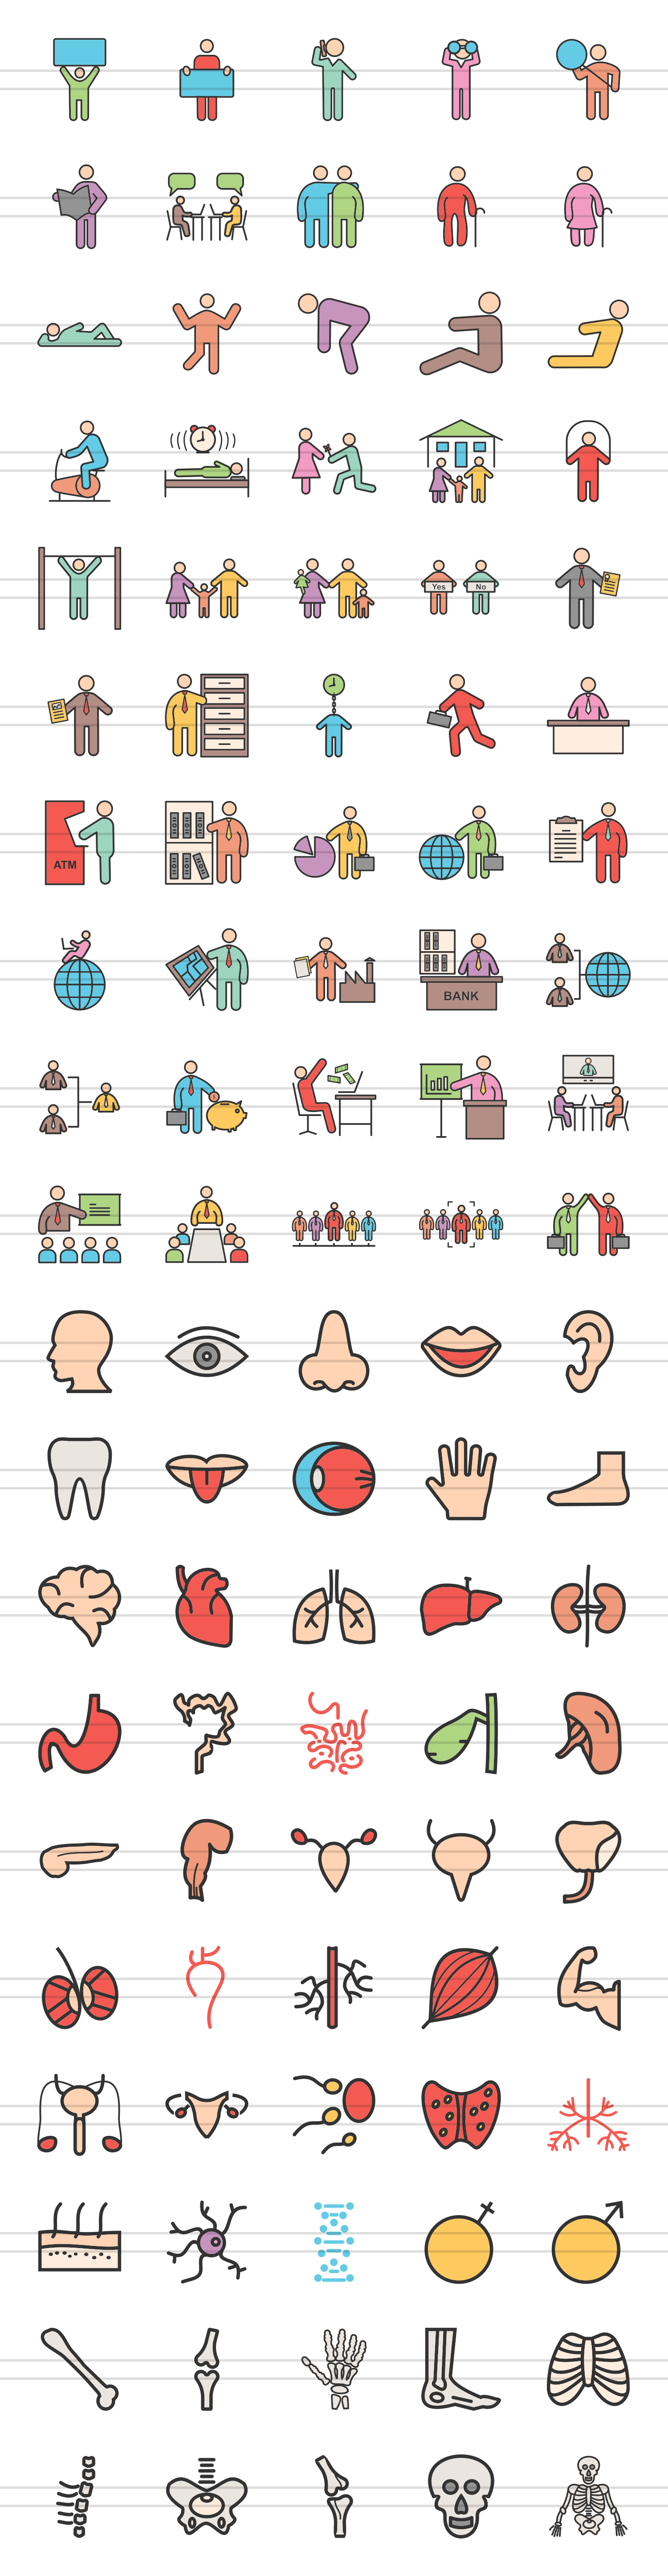 100 Humans & Anatomy Filled Line Icons example image 2